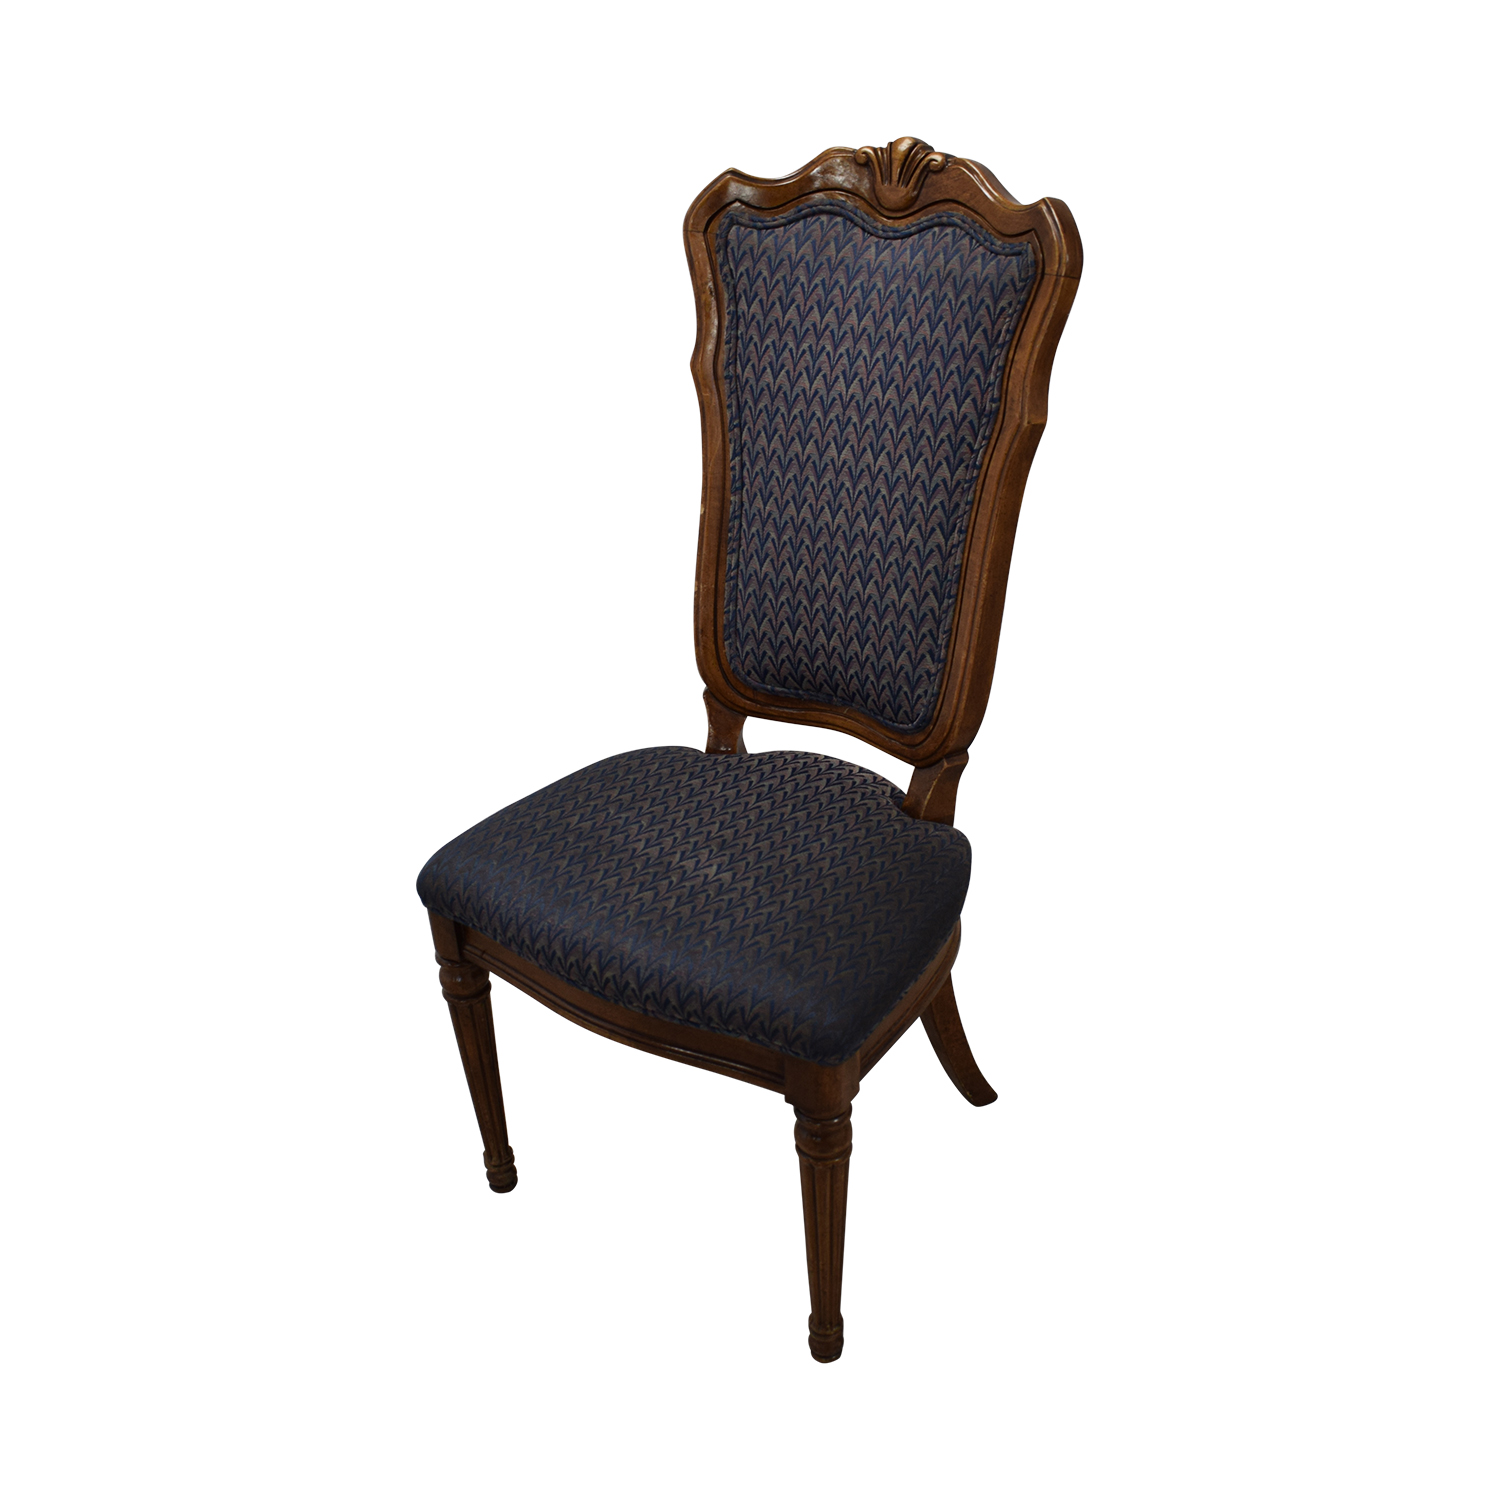 Printed Upholstered Dining Chairs coupon